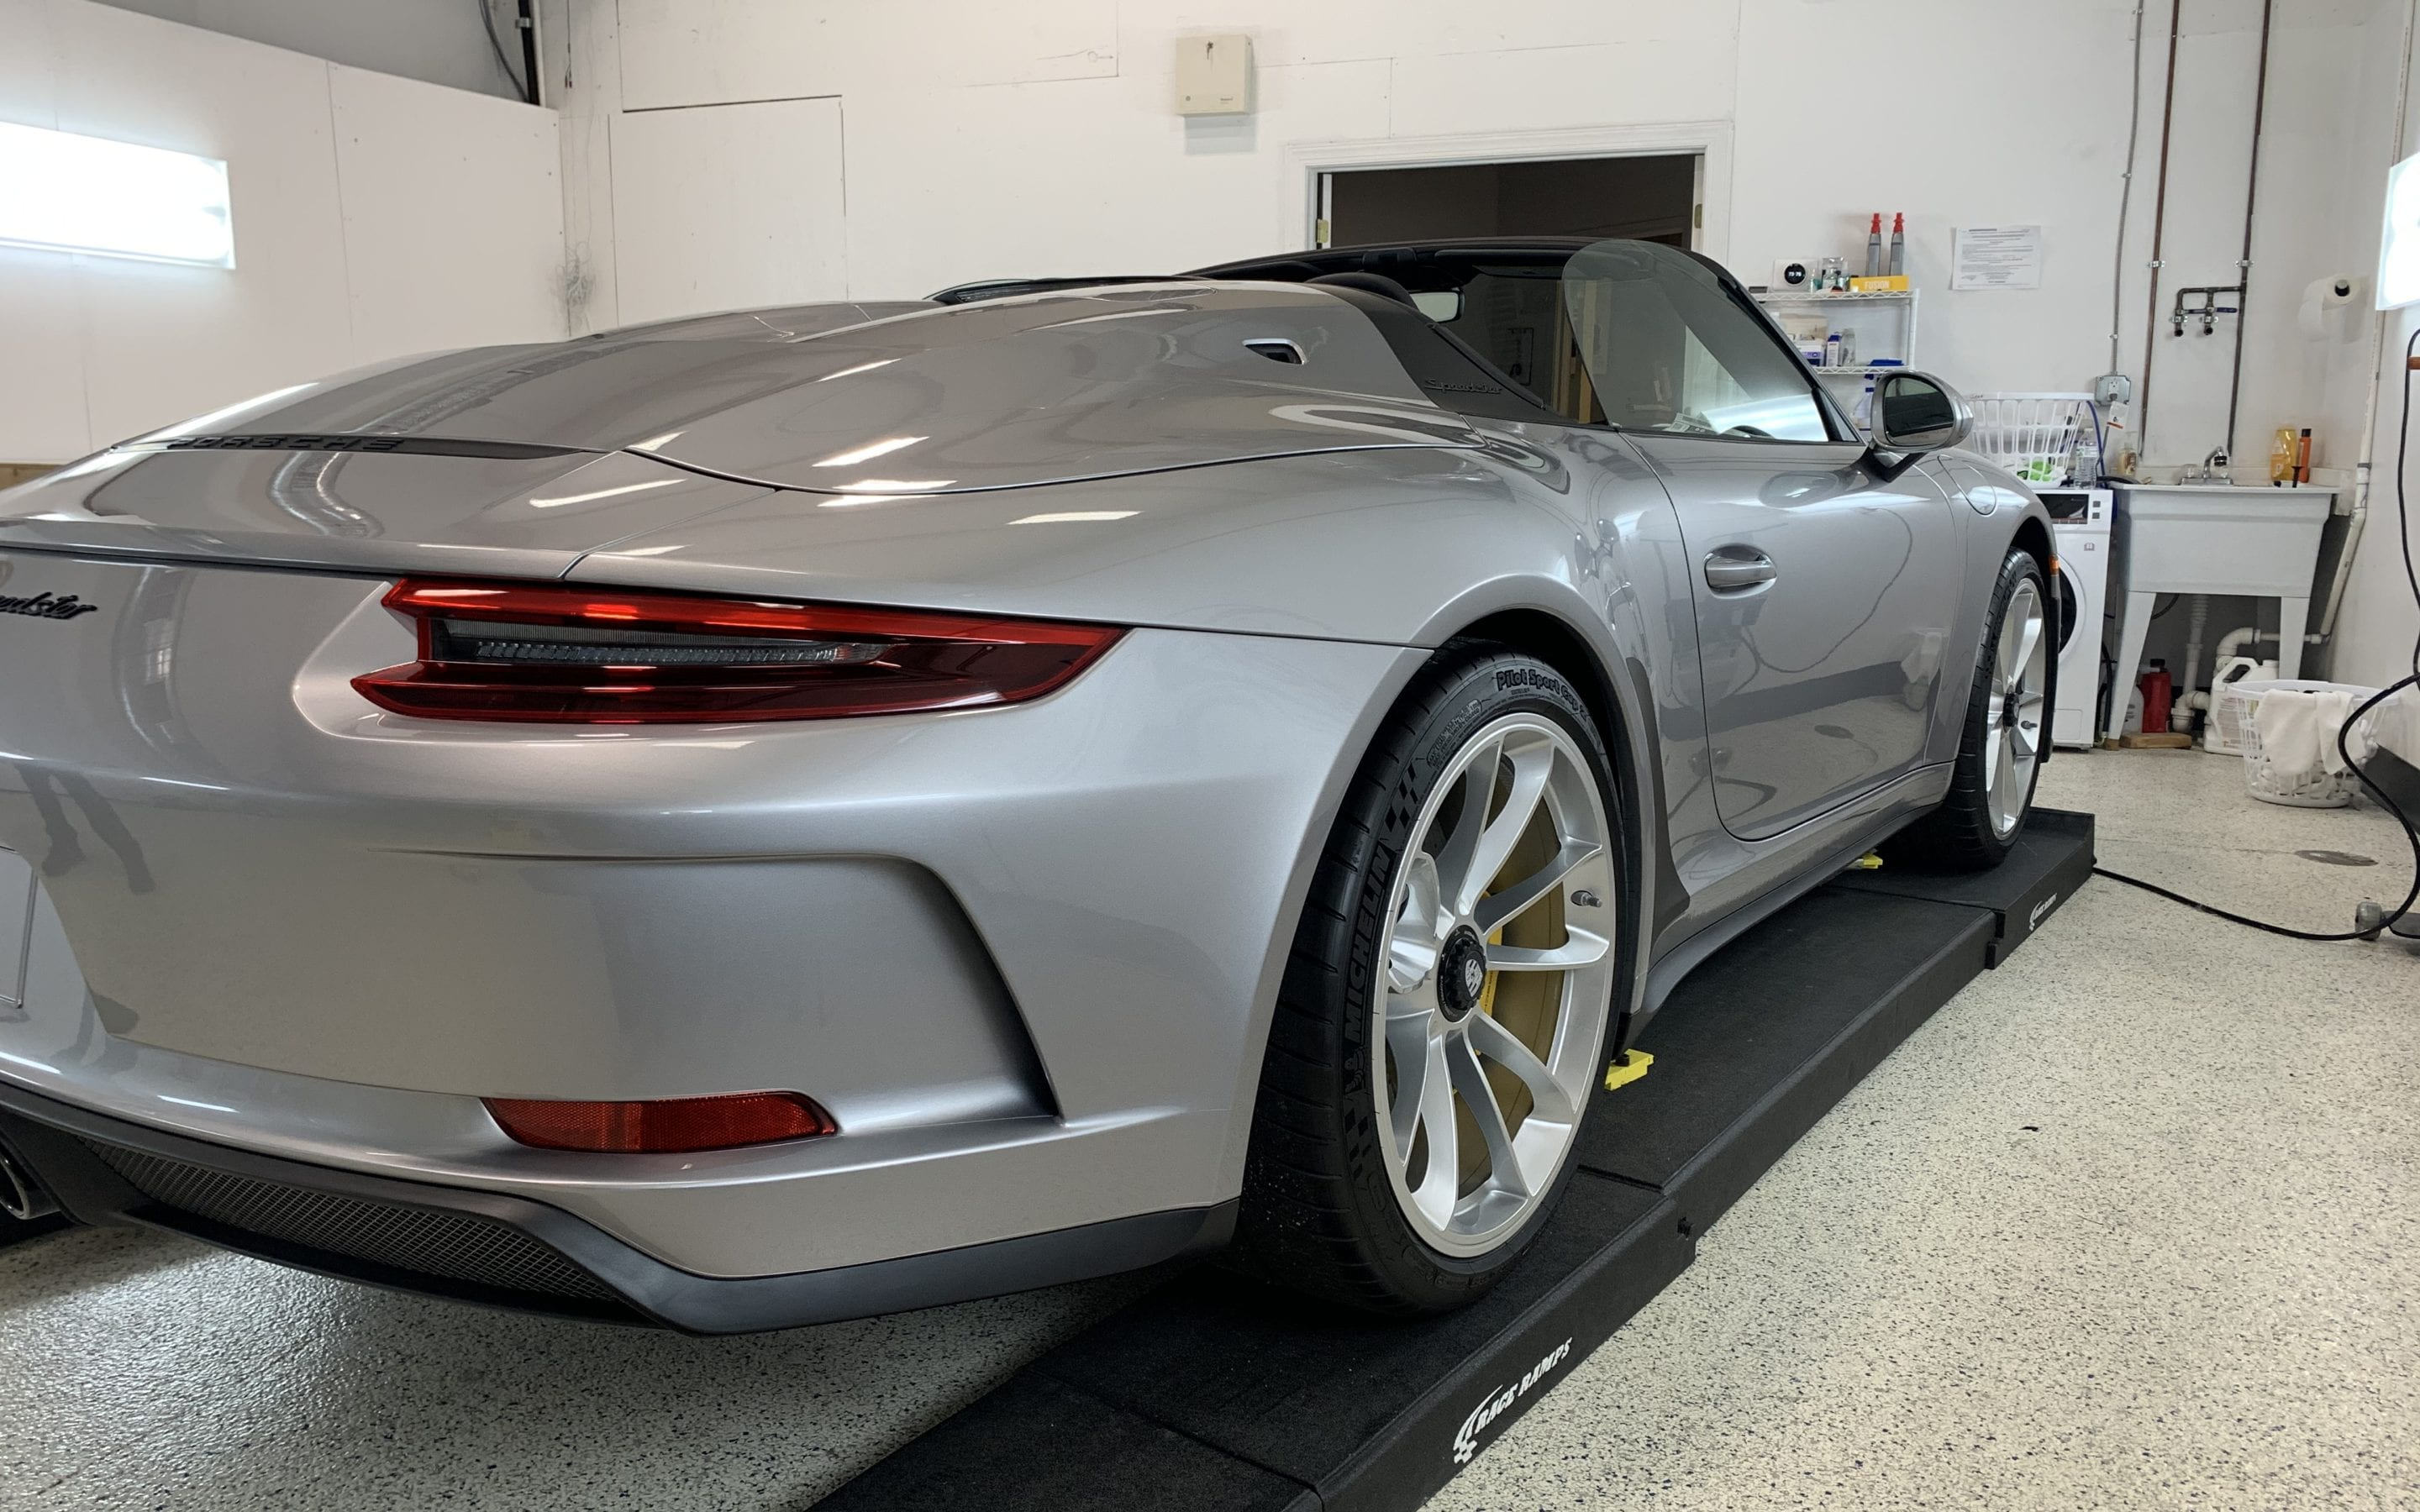 New Car Preparation of a 2019 Porsche 911